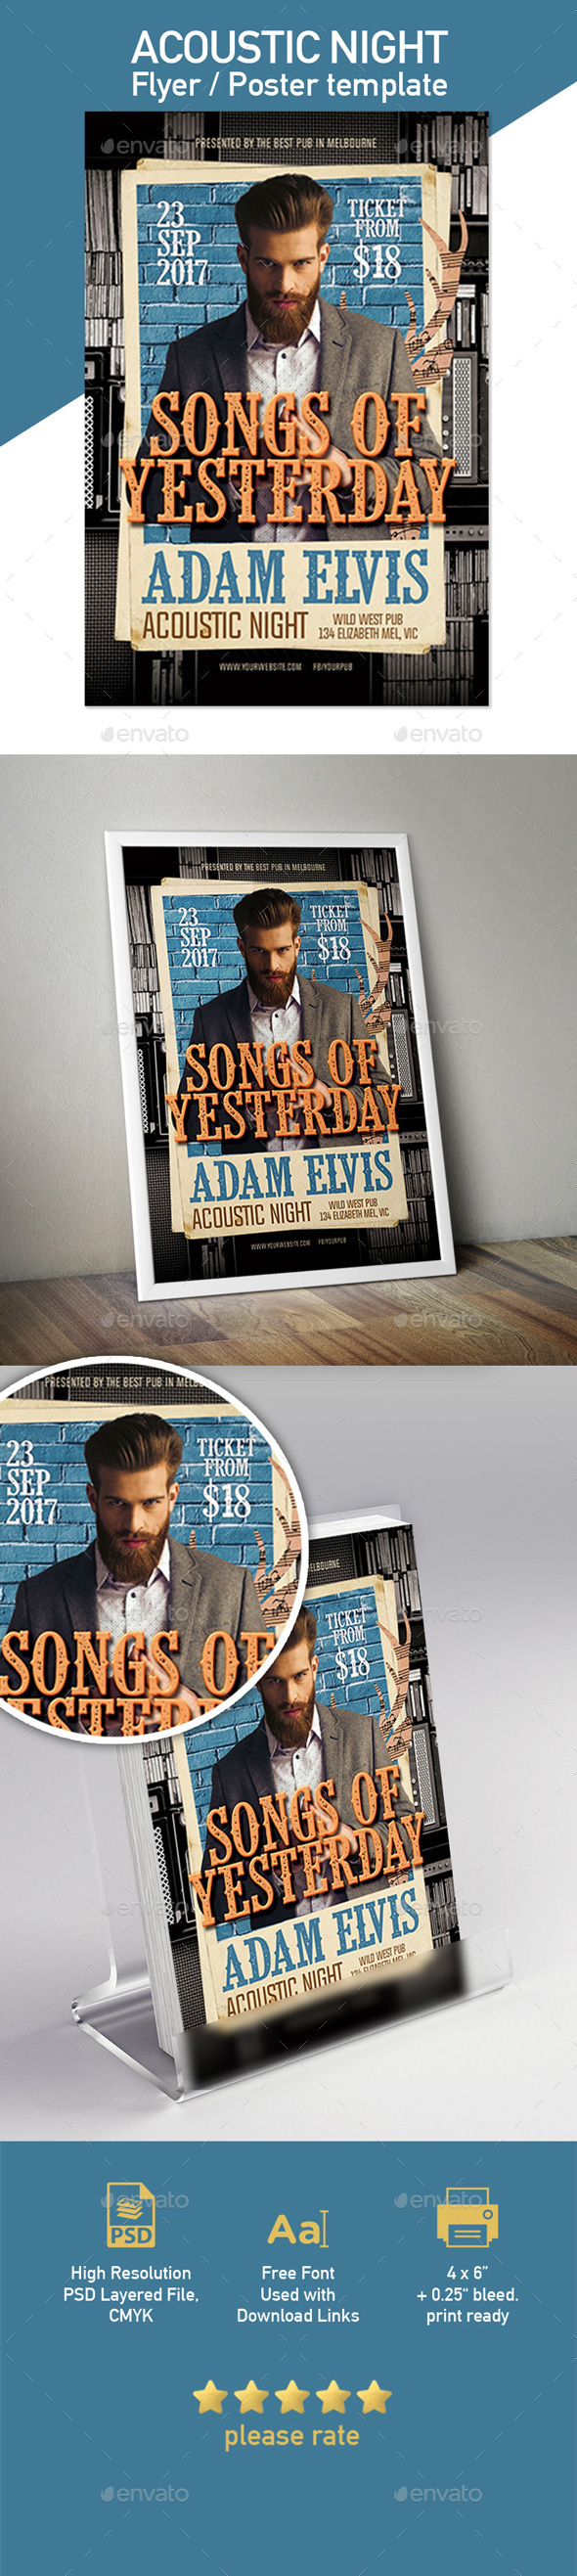 Acoustic Night Flyer Template - Concerts Events